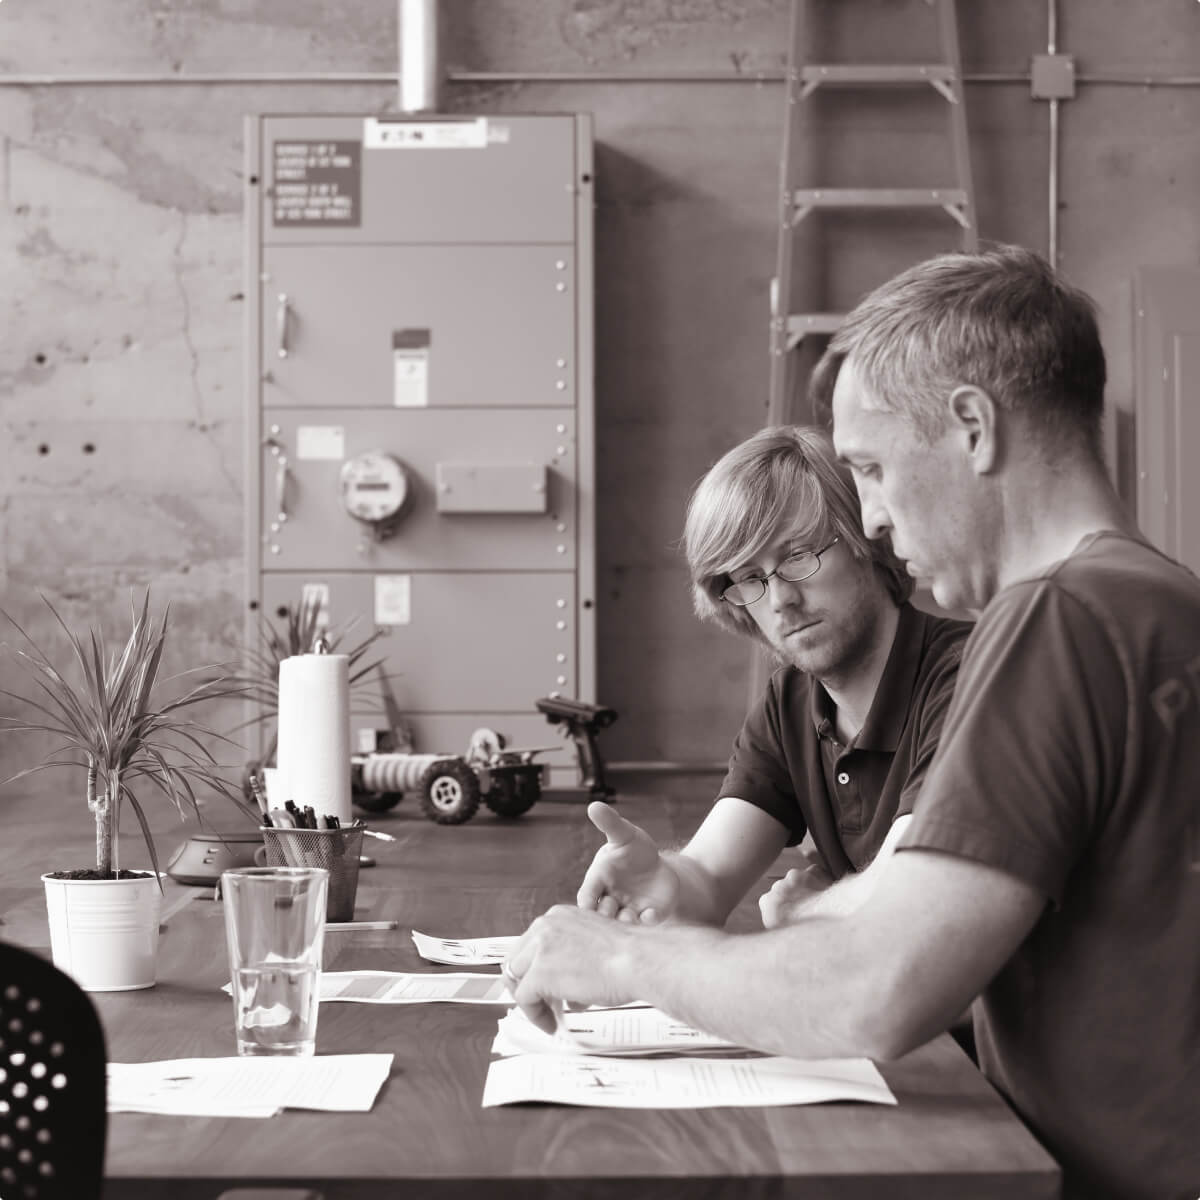 Two Cooper Perkins engineers sit at a desk and work together to solve a challenging problem.